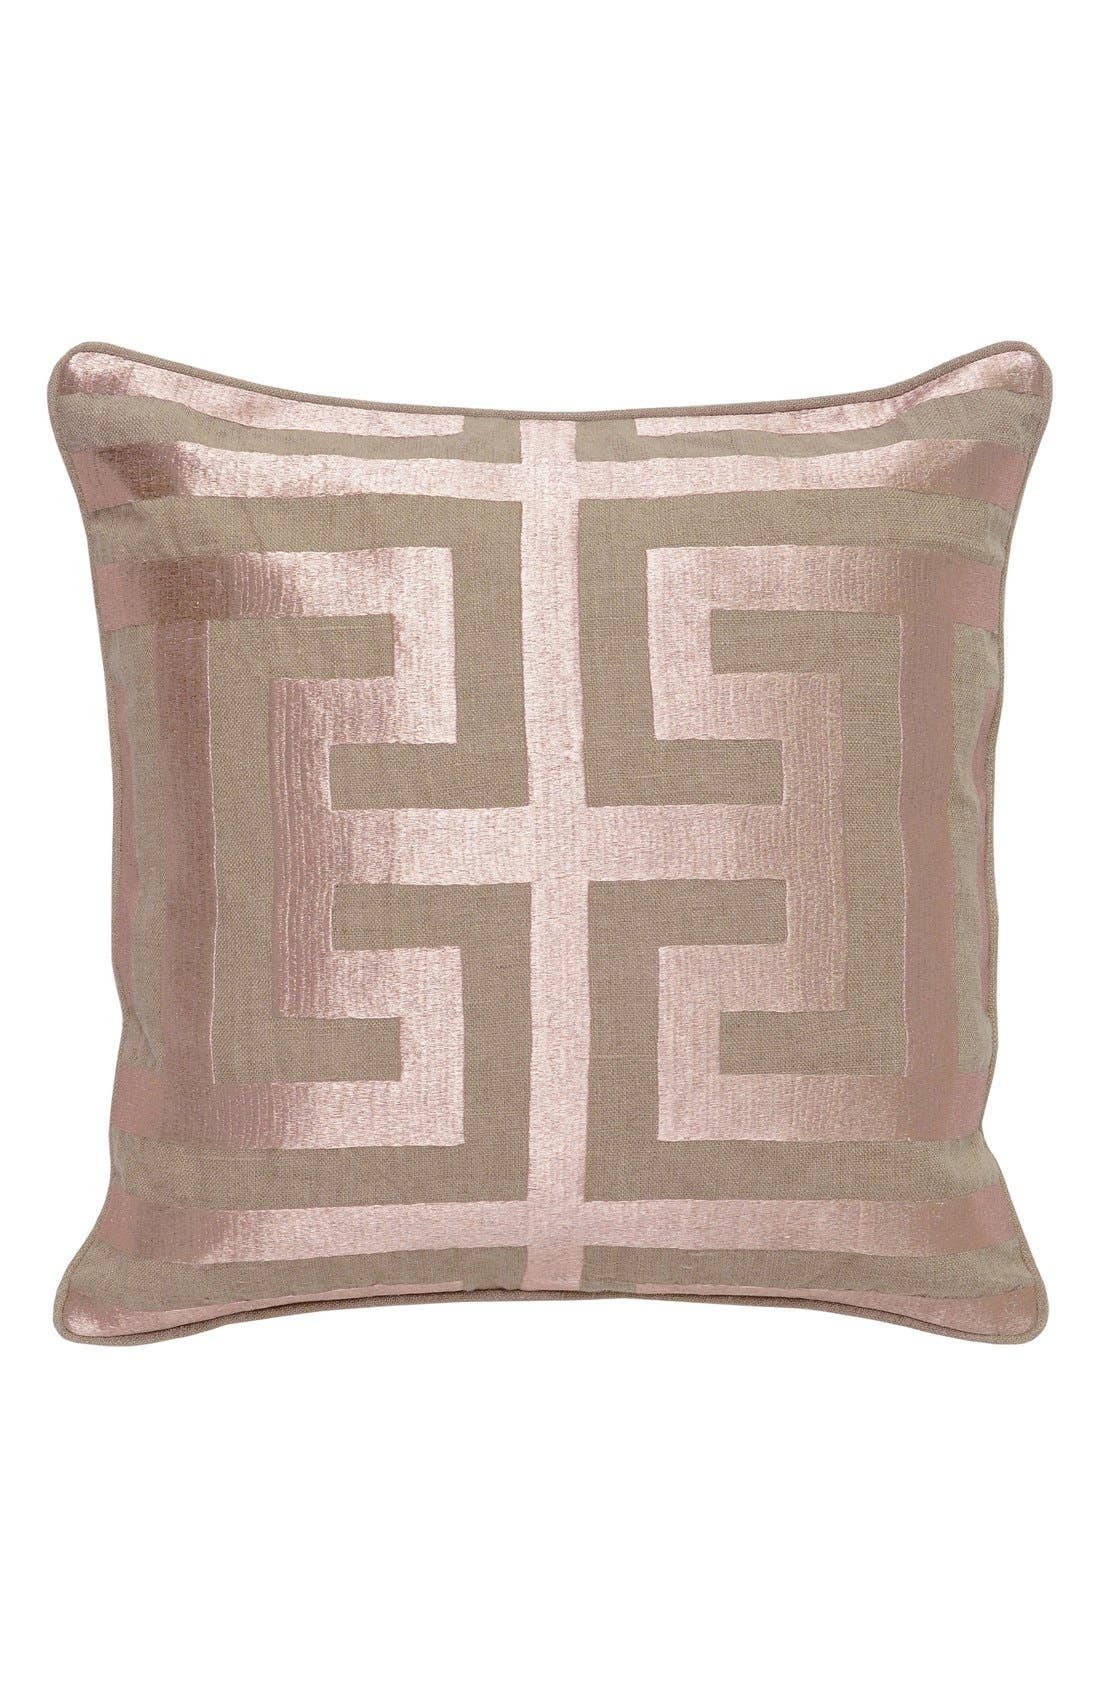 Alternate Image 1 Selected - Villa Home Collection 'Capital' Decorative Pillow